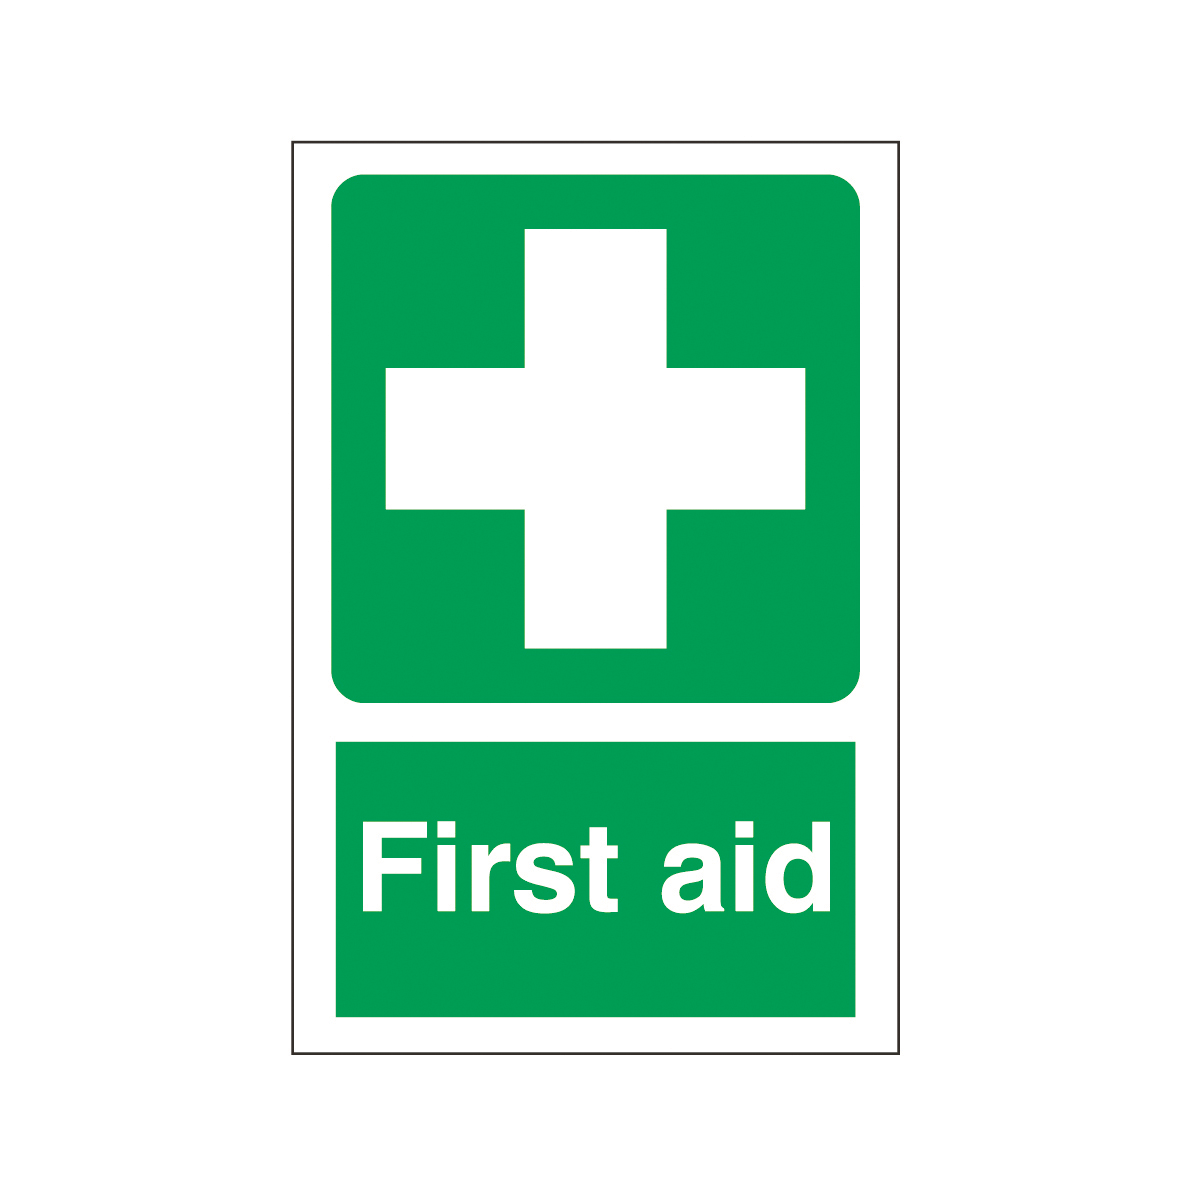 First Aid Safety Signs Warehouse Signs Amp Label From